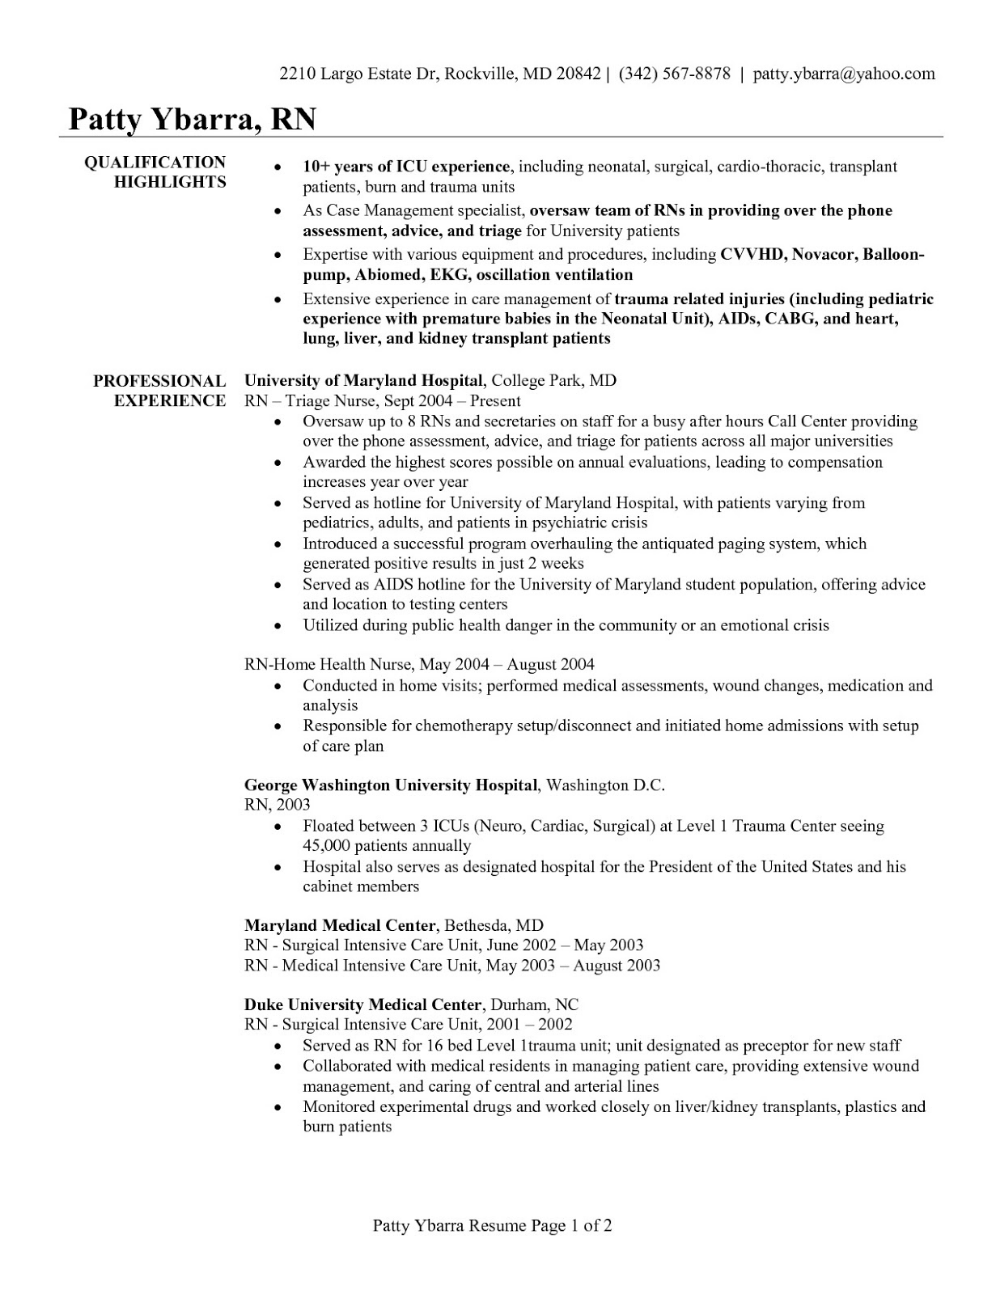 Nursing Resume Examples 2019 New Grad Pdf 2020 Nursing Resume Examples Nursing Resume Example Nursing Resume Examples Nursing Resume Registered Nurse Resume